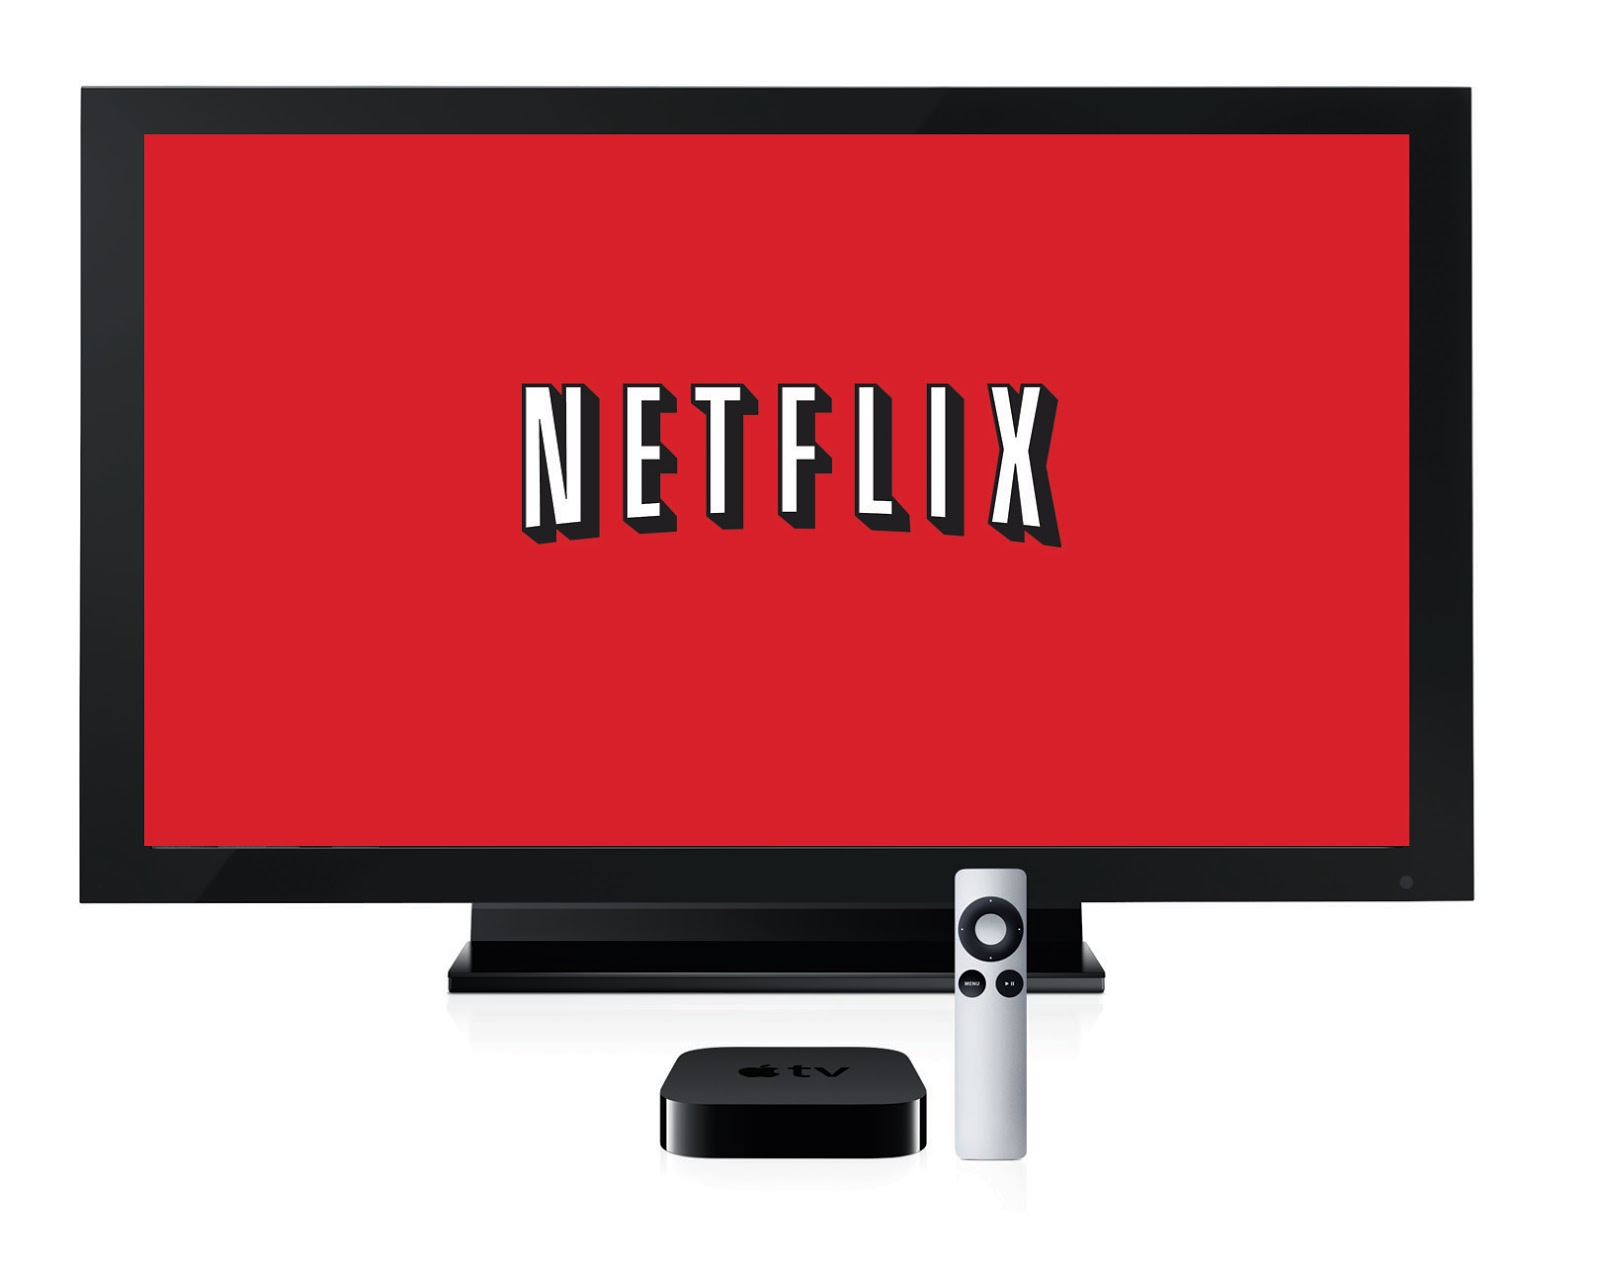 What's new on Netflix in Movies & TV shows for April 2014